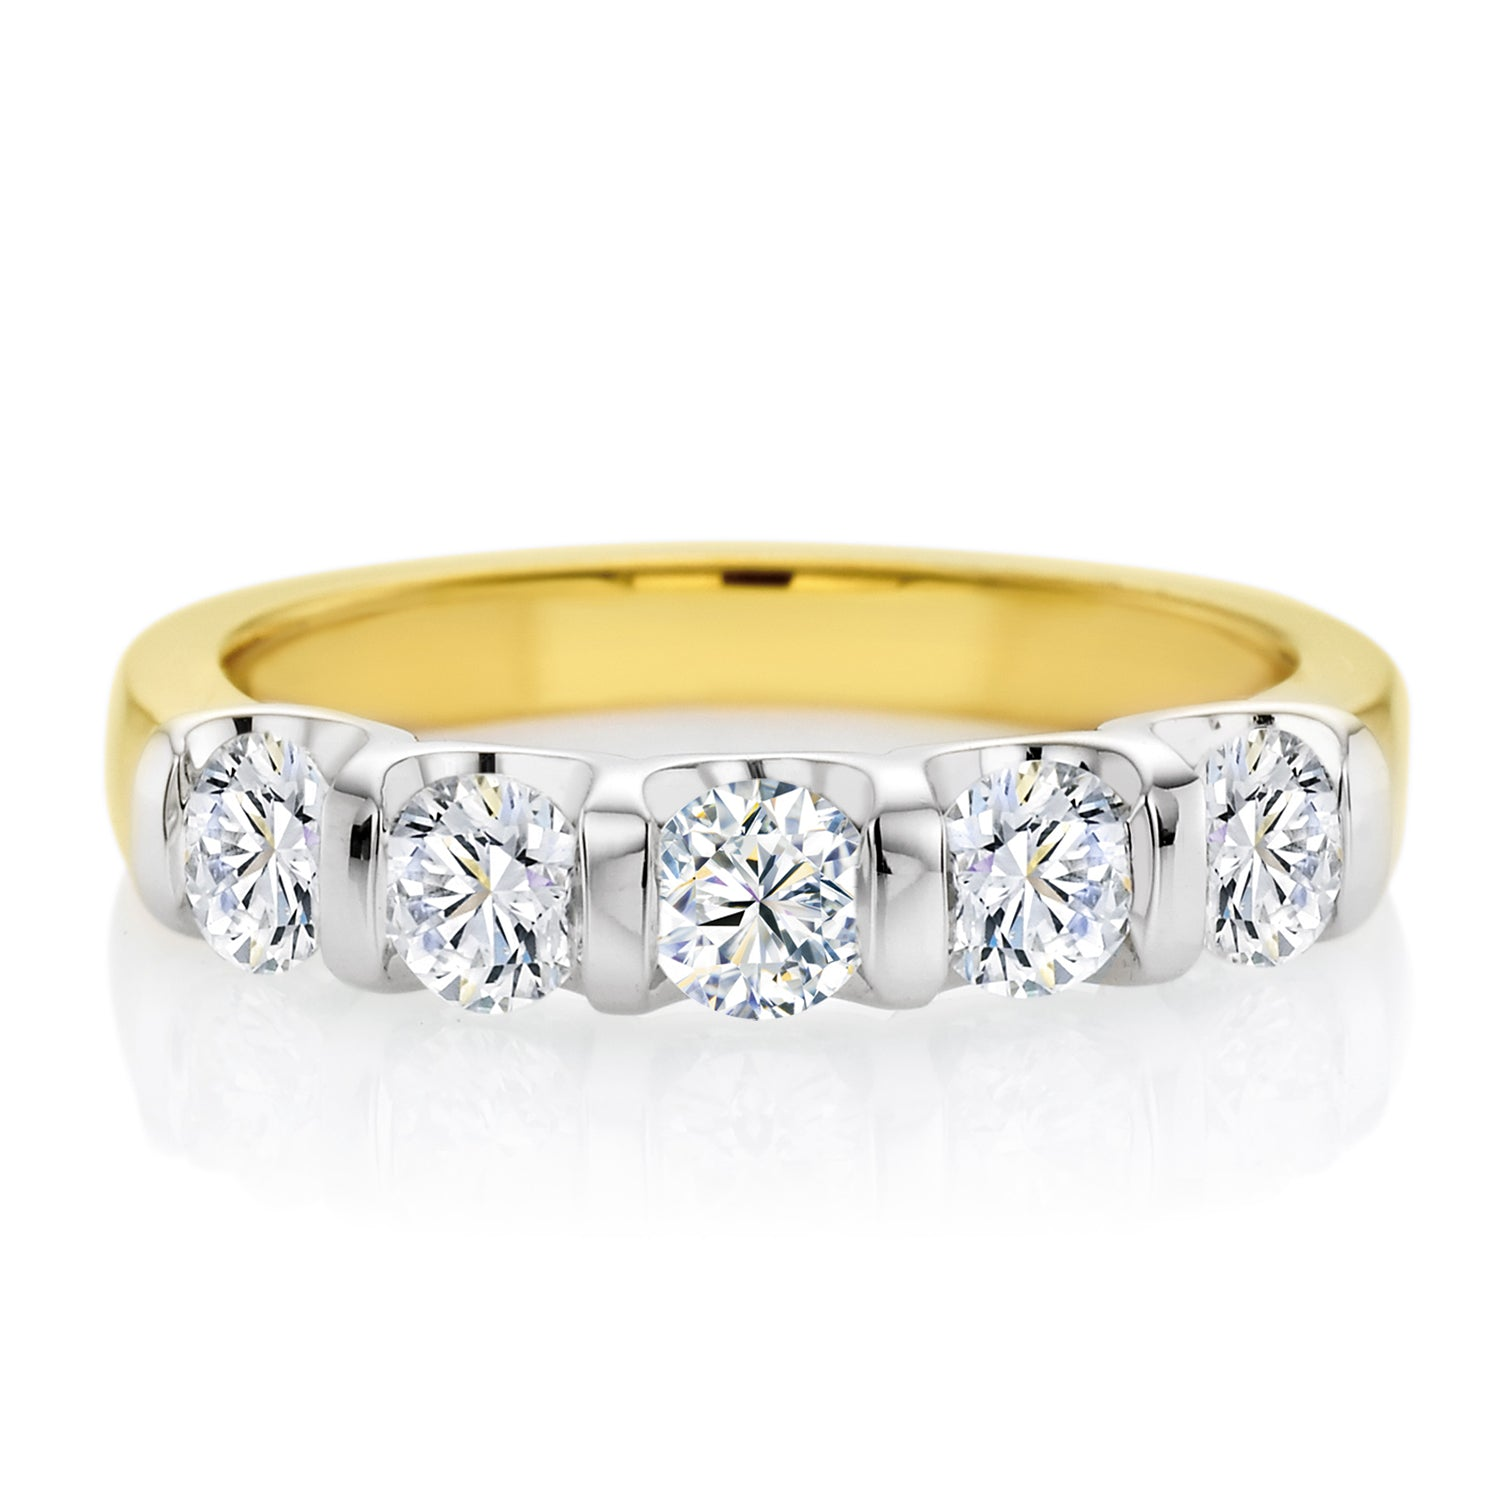 Forevermark 18ct Two Tone Gold Round Brilliant Cut with 1 CARAT tw of Diamonds